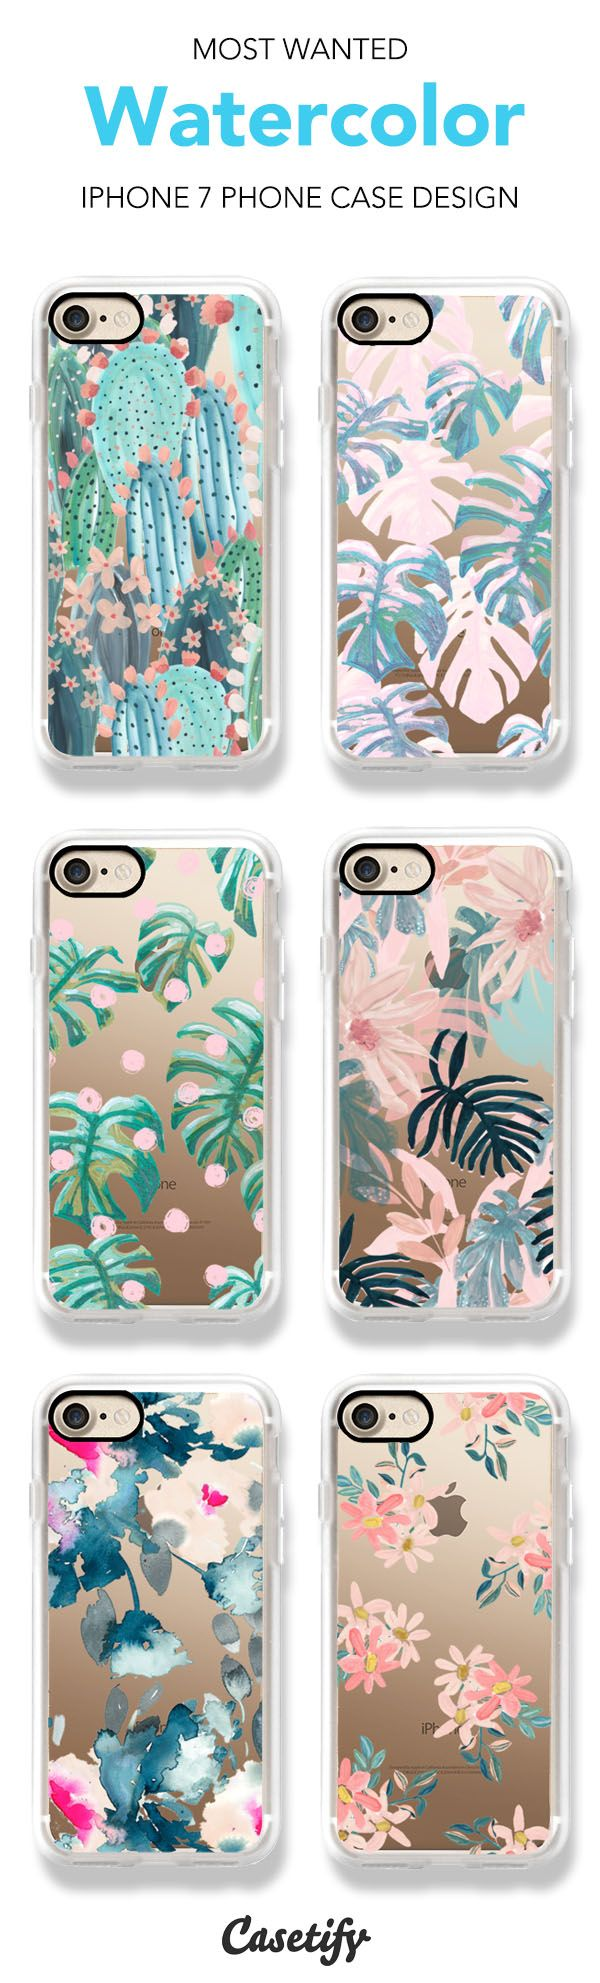 Most wanted watercolor iphone 7 and iphone 7 plus case